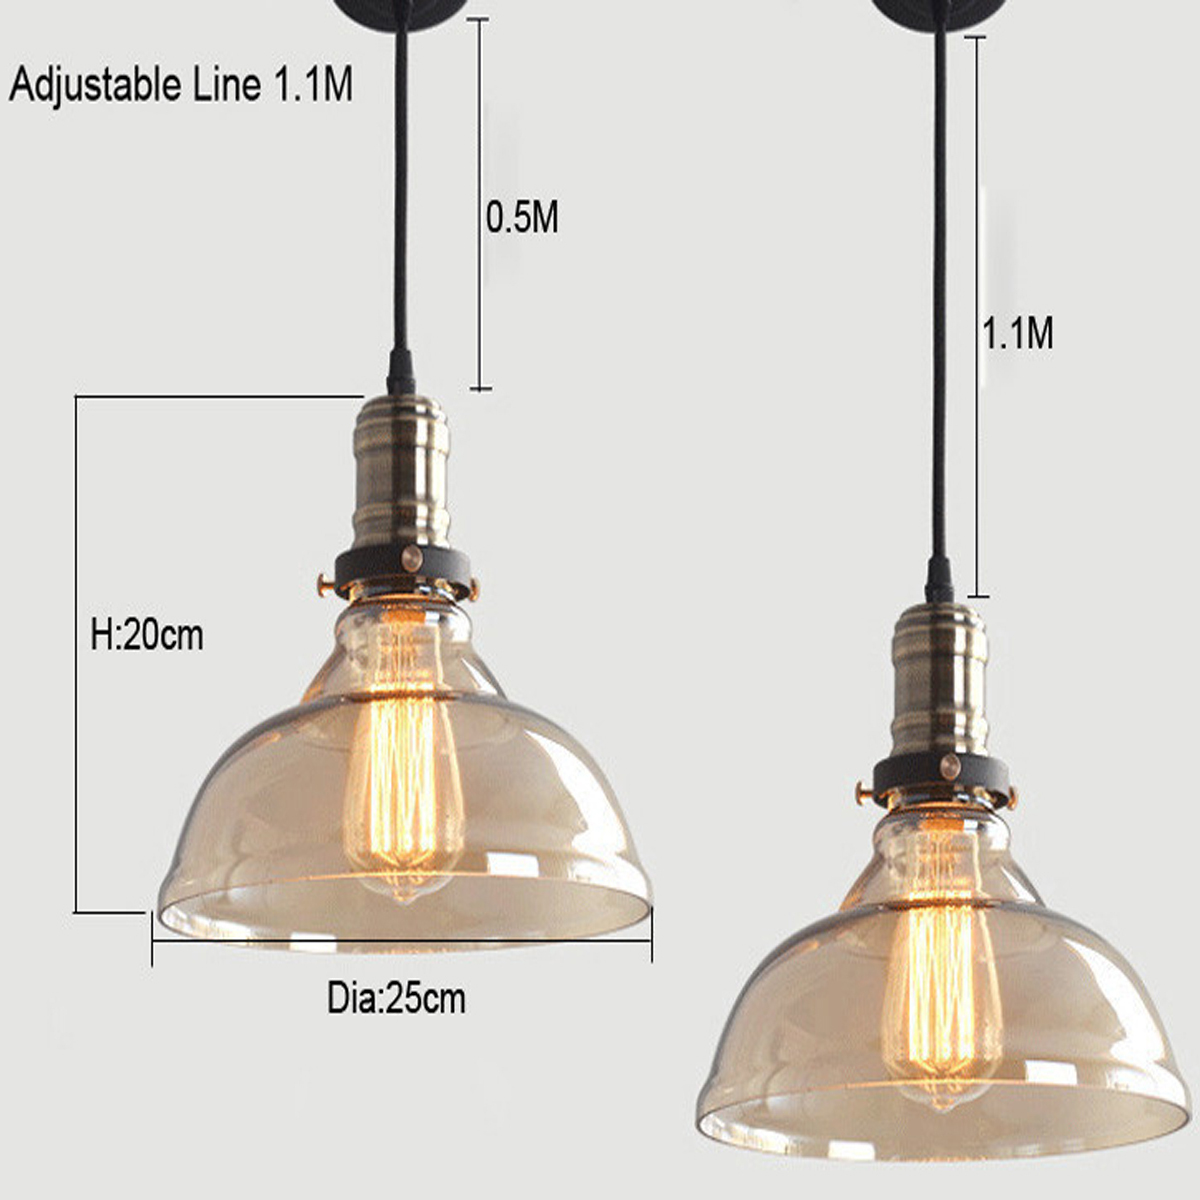 90-260V E27 40W Retro Vintage Industrial Pendant Light Ceiling Chandelier Glass Fixture Lamp Decor For Kitchen Living Room Coffee Shop Restaurant